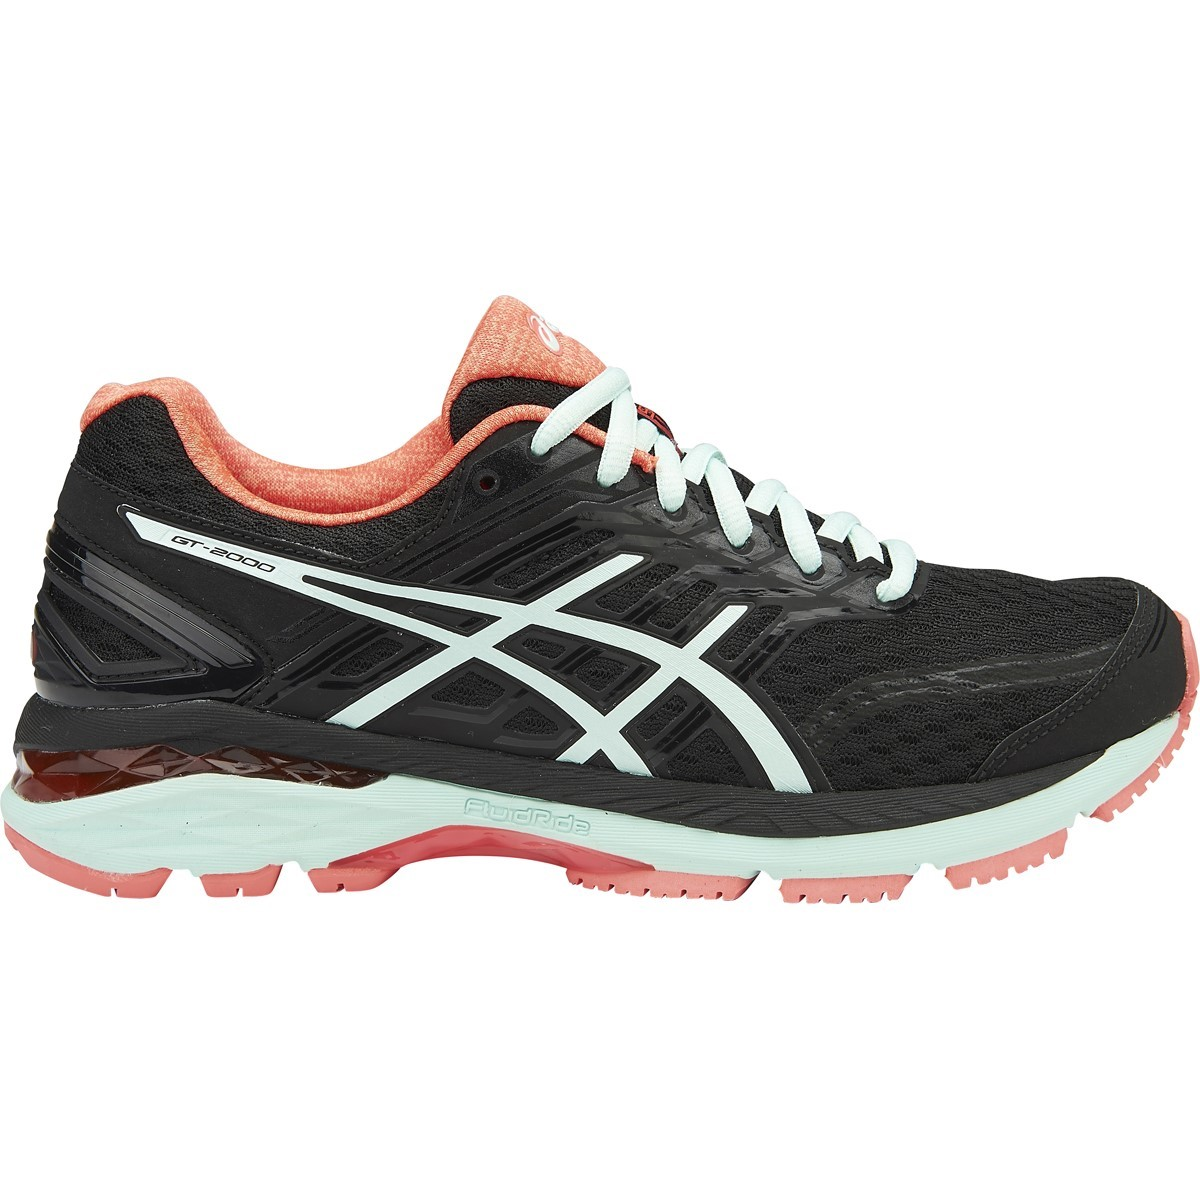 Pink And Black Asics Running Shoes